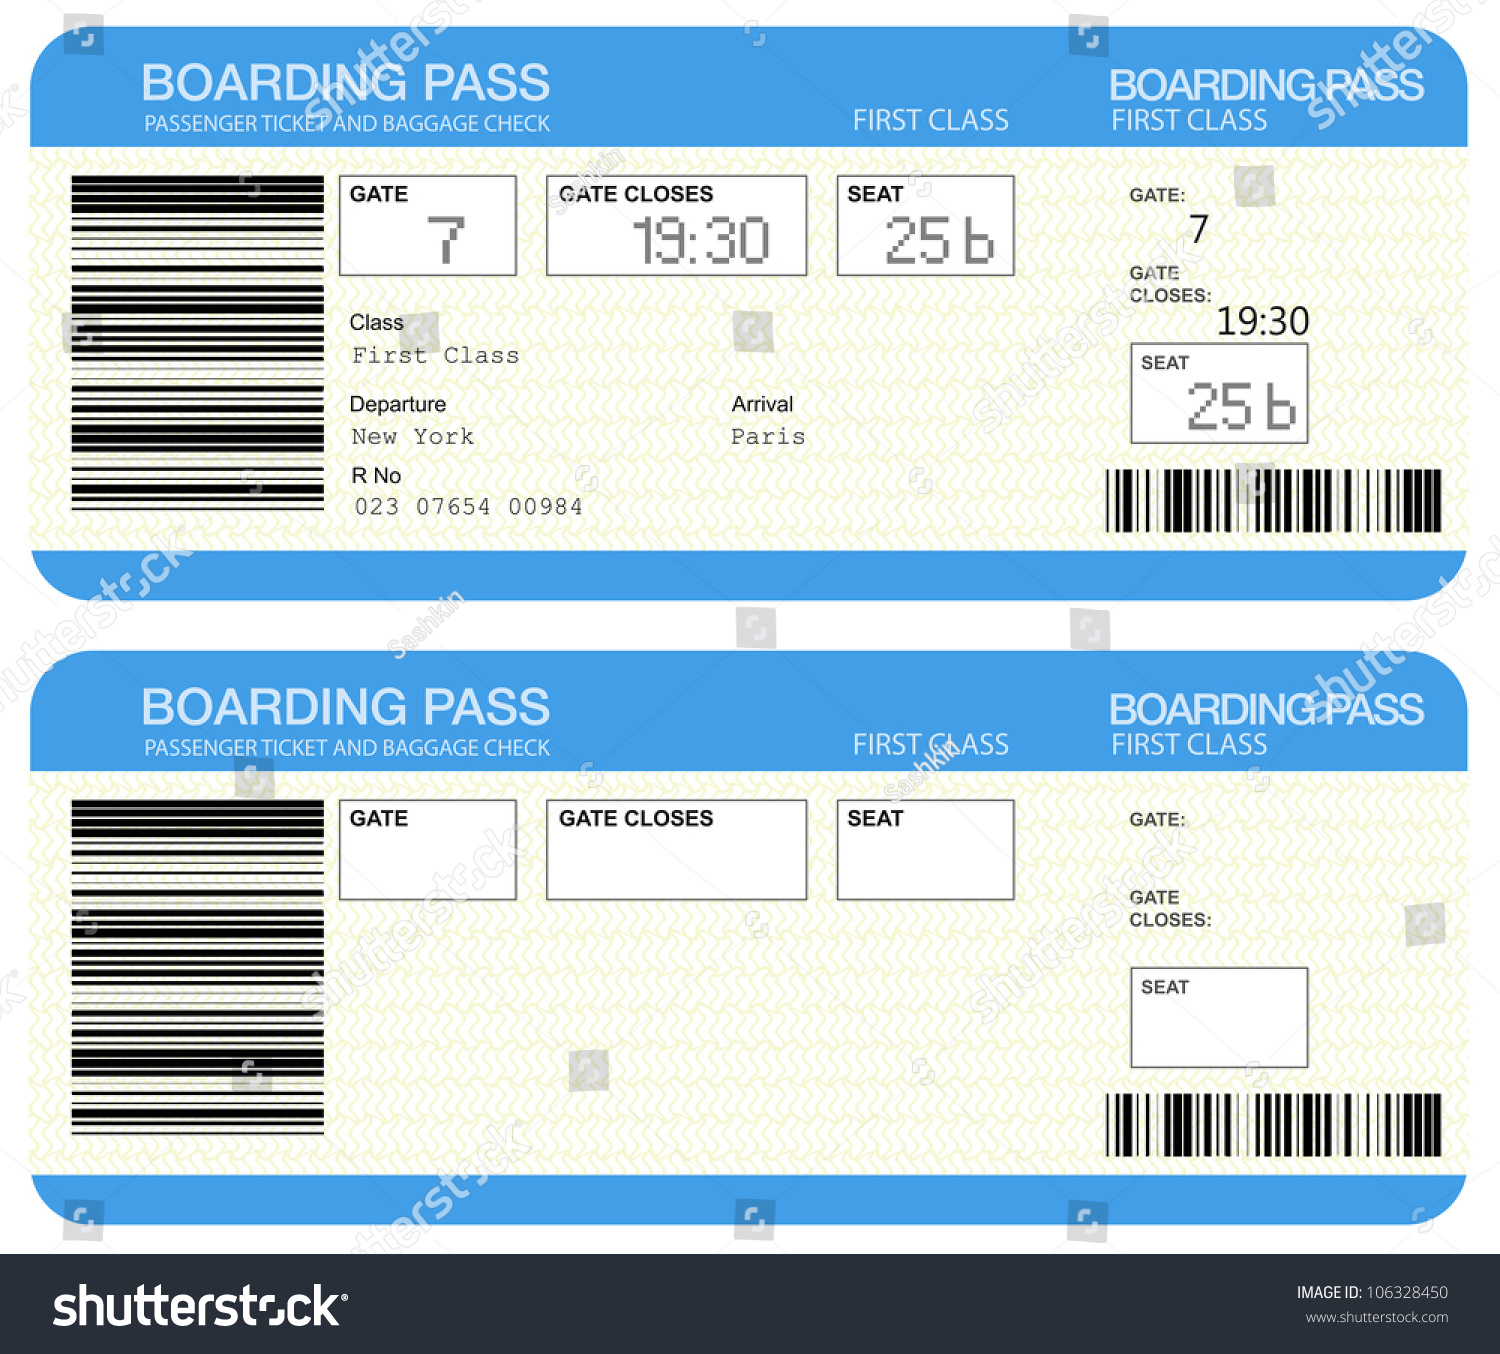 old plane illustration with Stock Photo Airline Boarding Pass Tickets on Biplane top view further Stock Photography Dance Symbol Image26666522 additionally A380 Qatar Airways 68407145 together with Lessons2 furthermore 8 Tropic Islands Vectors 11392.